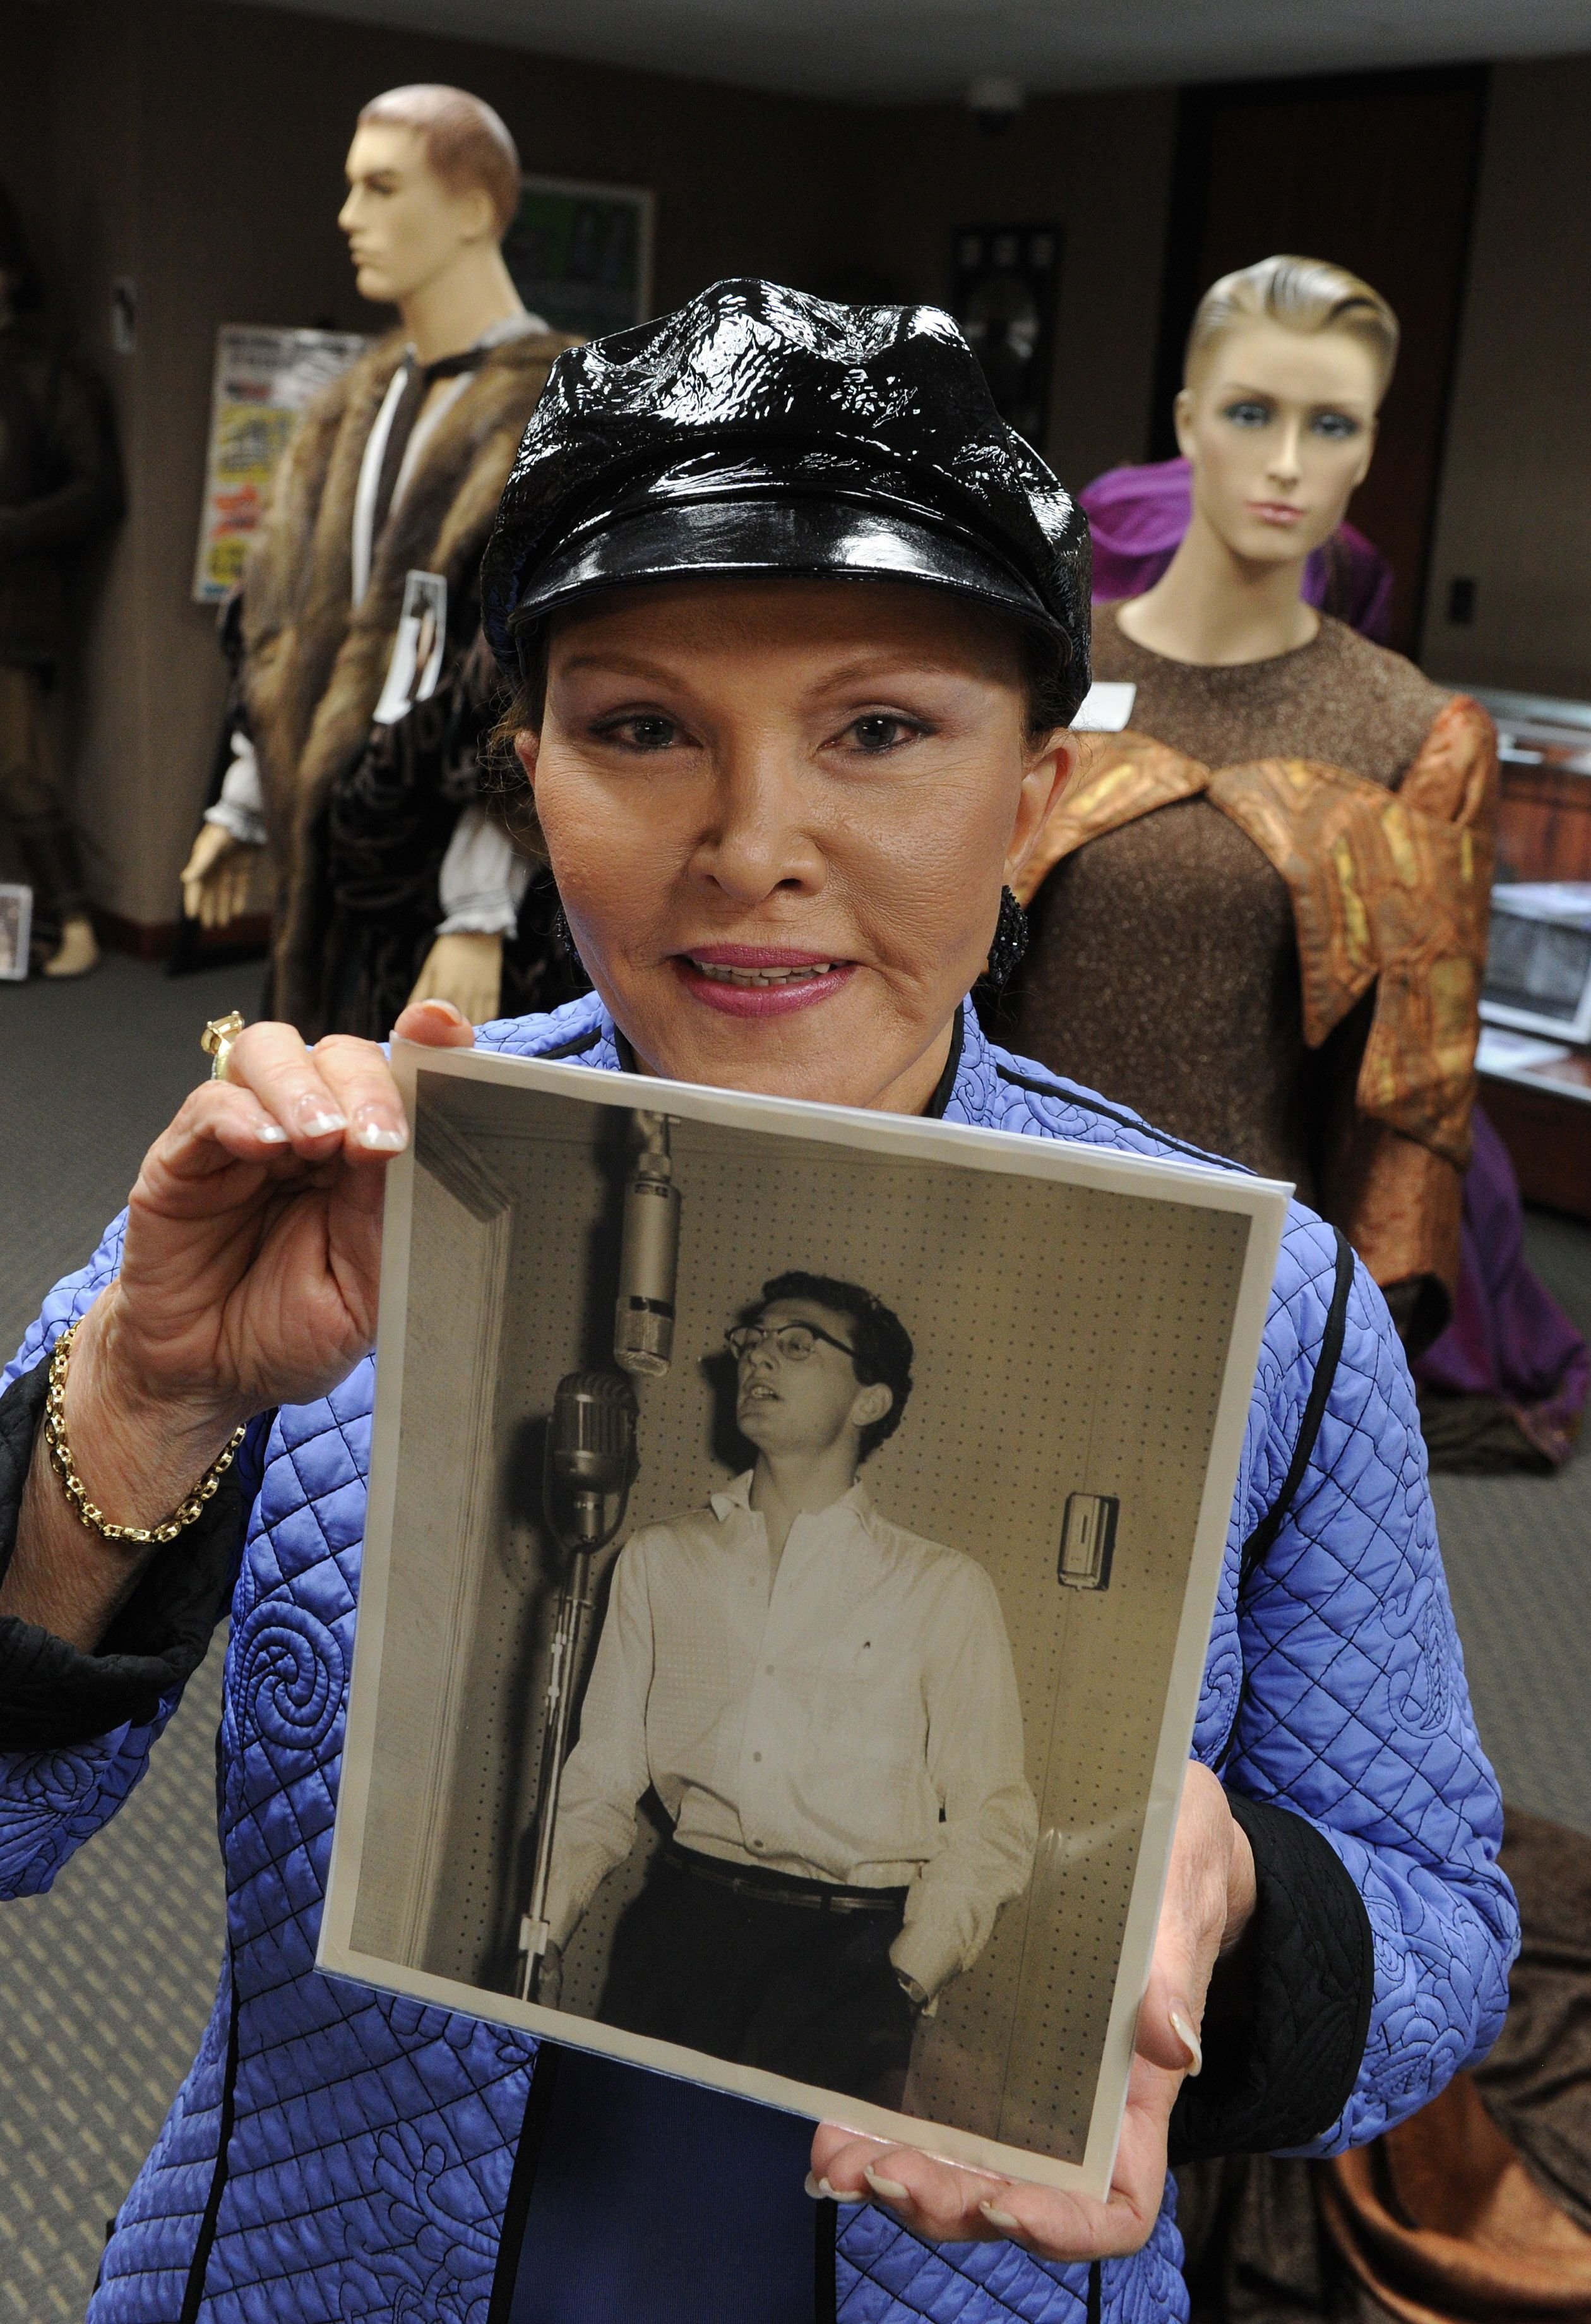 Maria Elena Holly holds a studio photo of Buddy Holly before an auction of the late singers memorabilia at the Heritage Auction Gallery in Beverly Hills on April 9, 2010.   Source: Getty Images